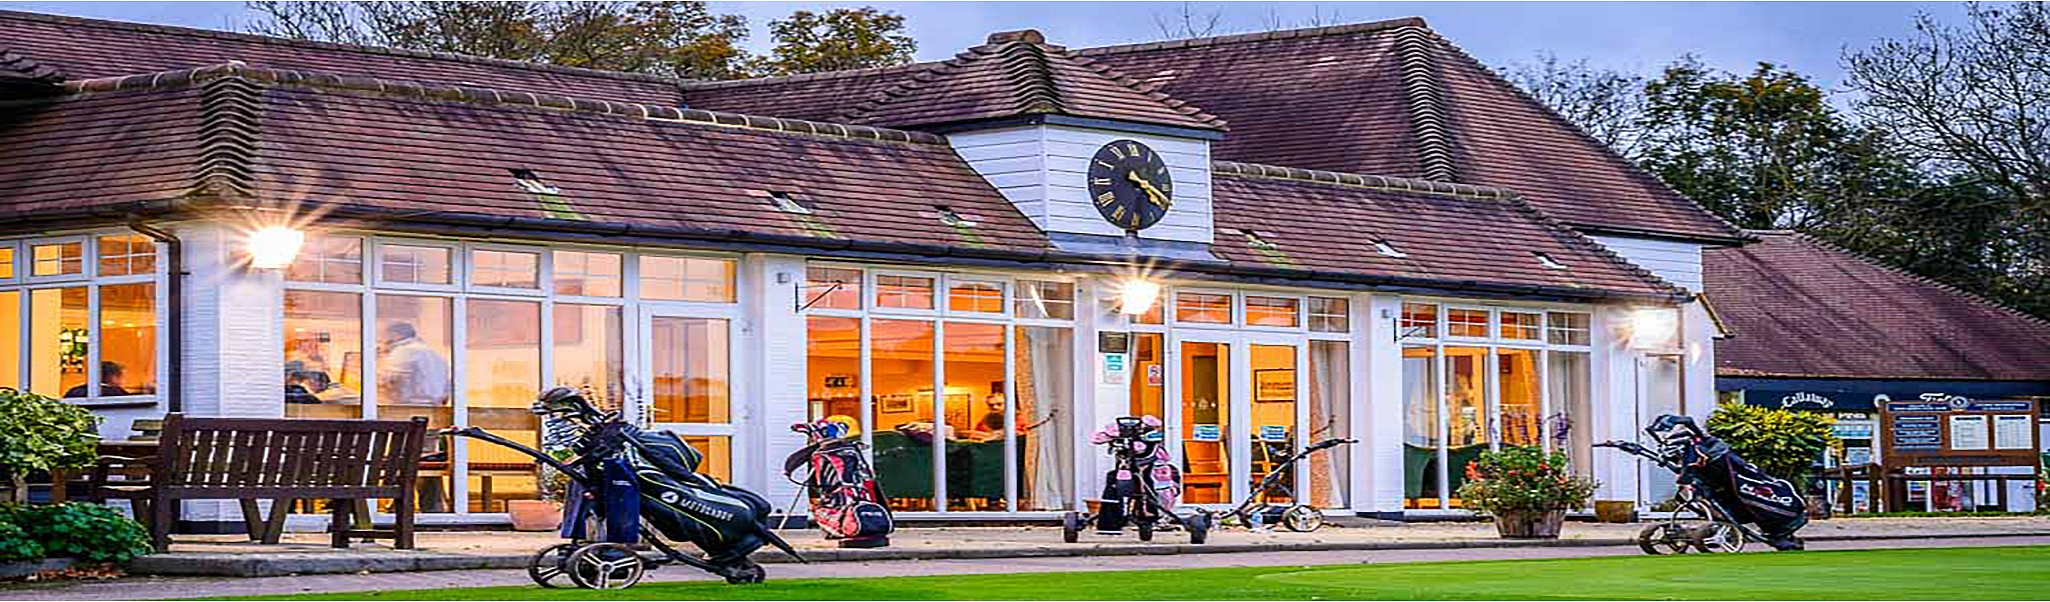 West Herts Golf Club Stunning Wedding and Event Location Rickmansworth